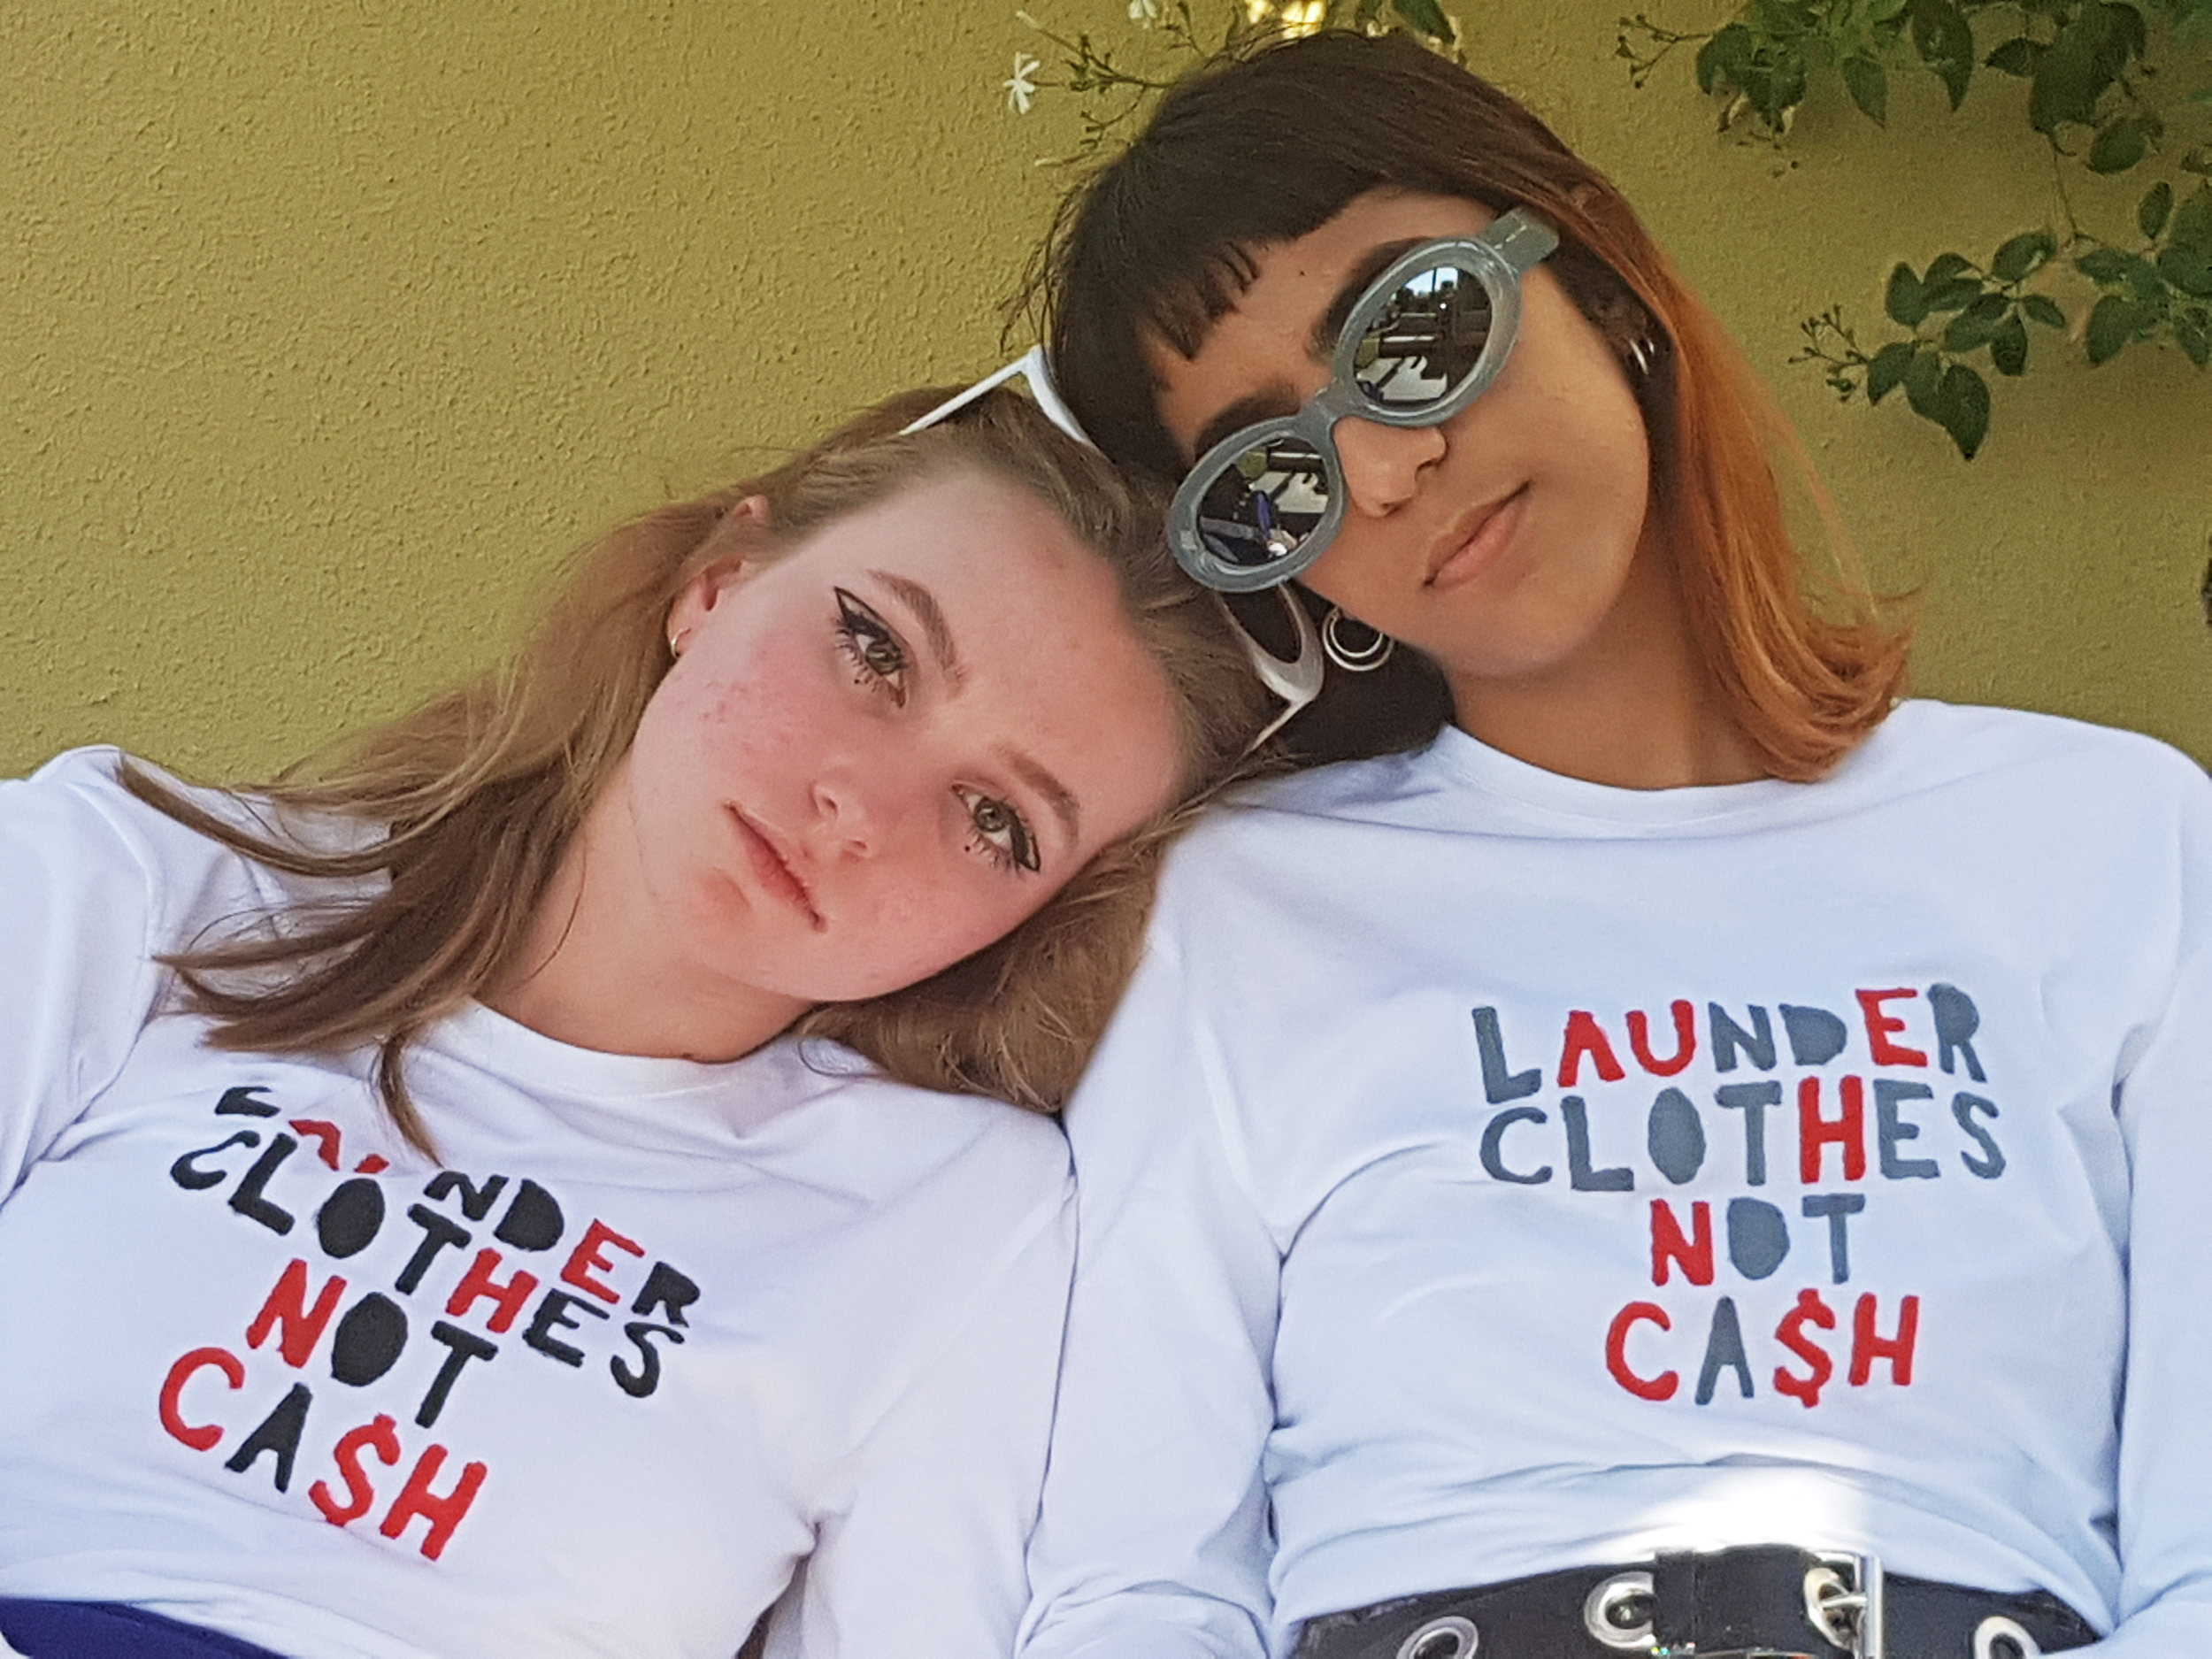 LAUNDER CLOTHES NOT CASH